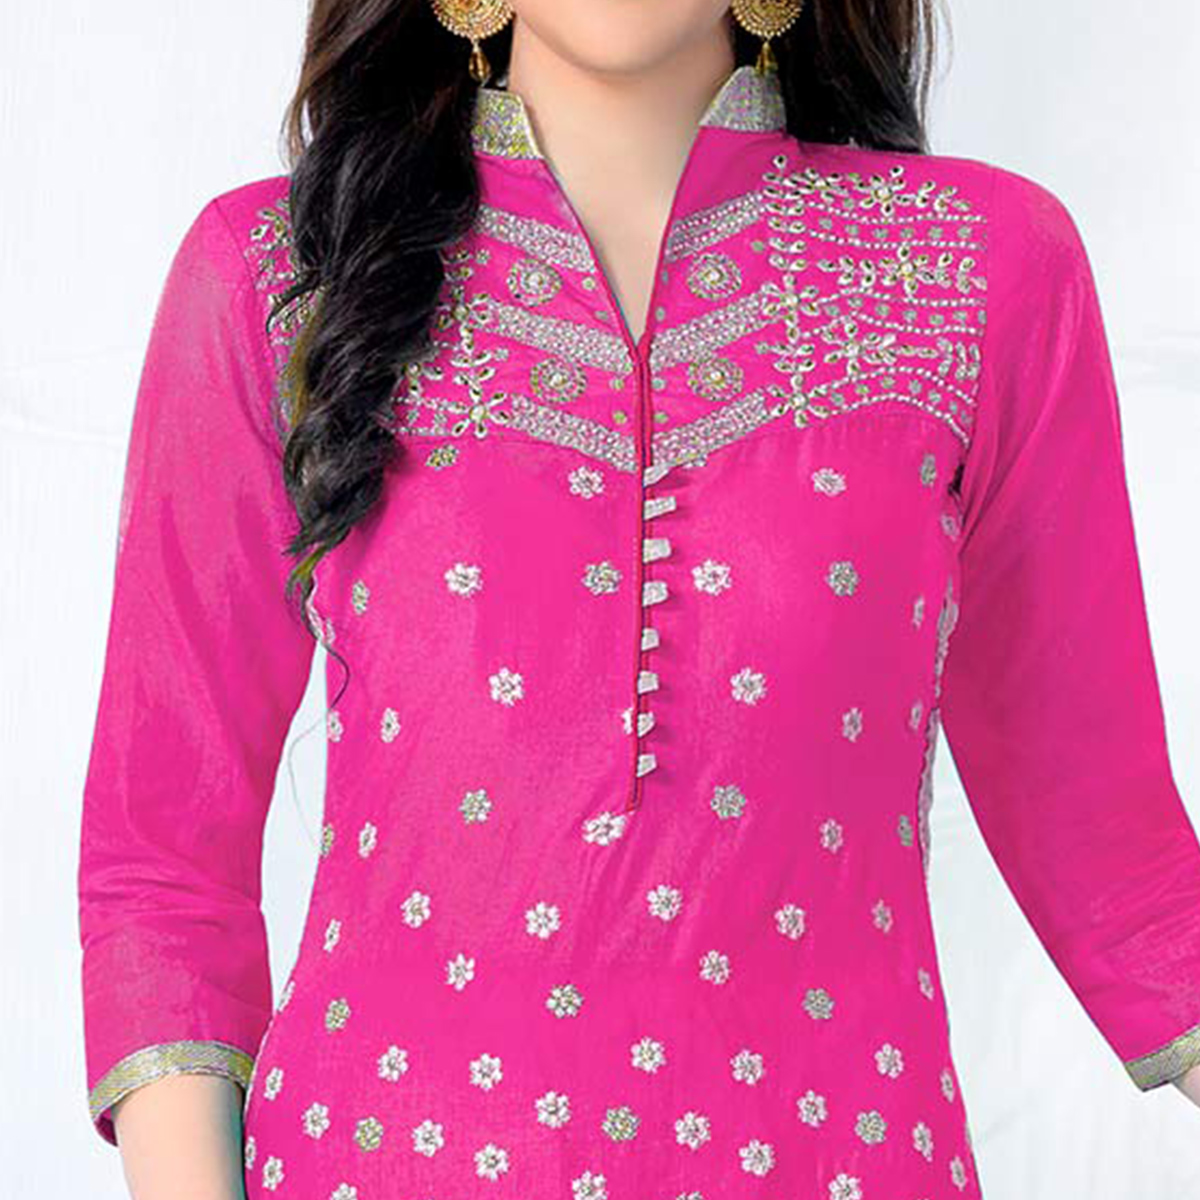 Groovy Pink Colored Party Wear Embroidered Cotton Dress Material